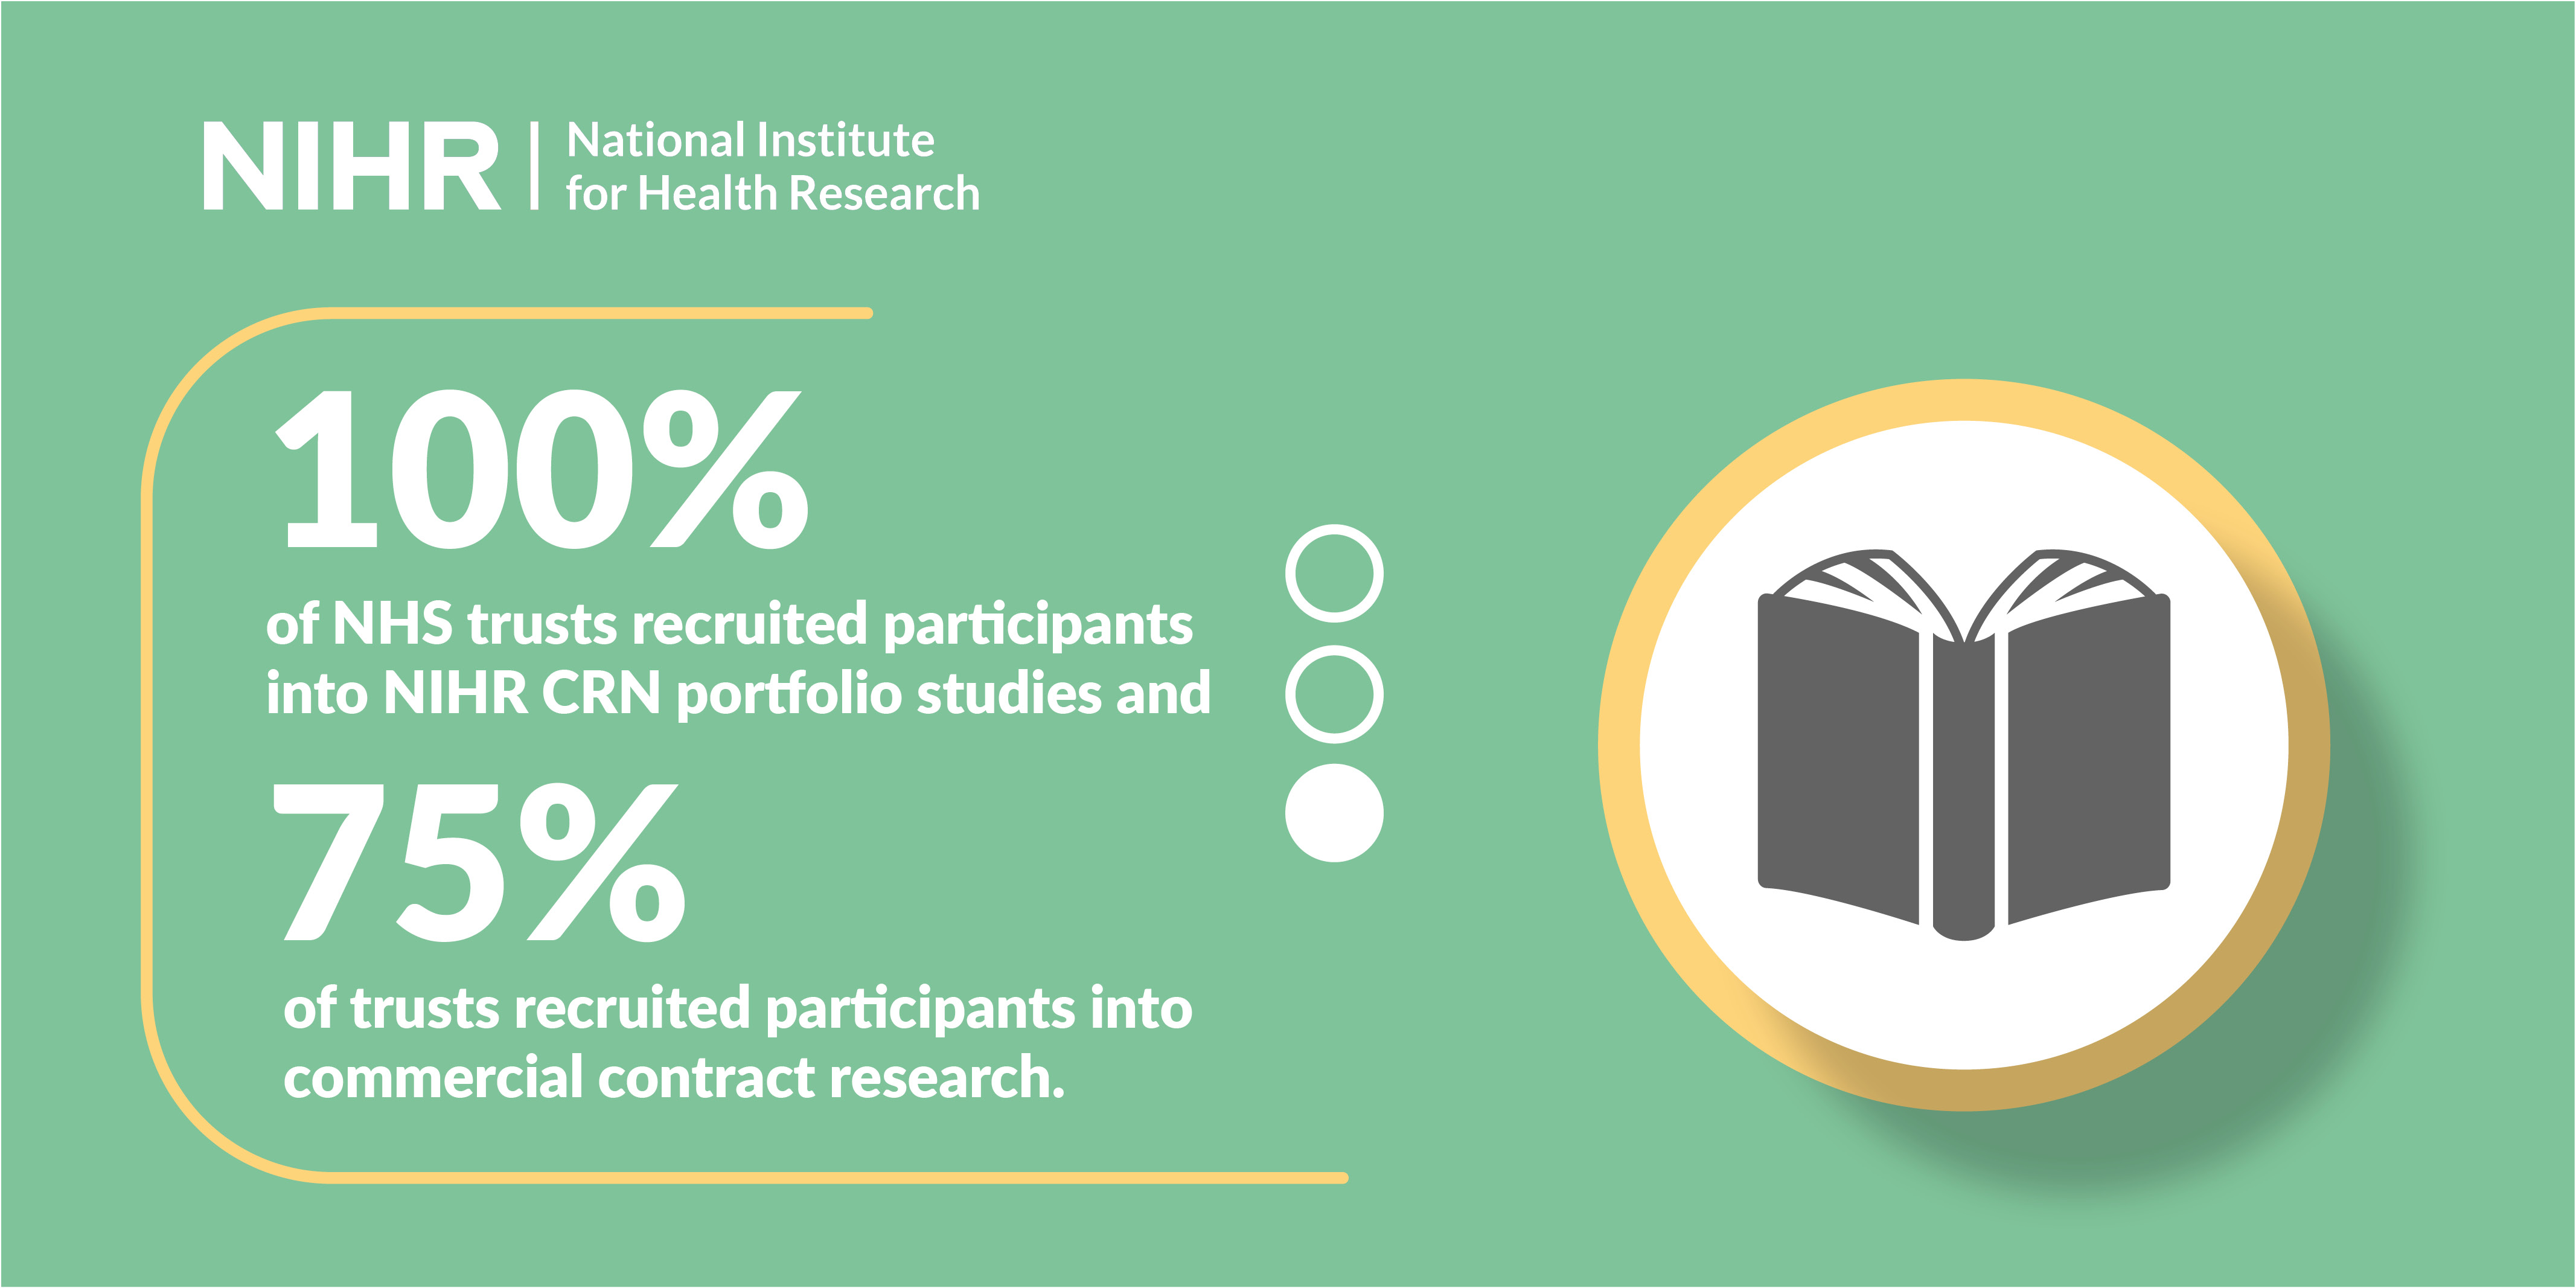 Percentage-of-trusts-recruiting-into-portfolio-and-research